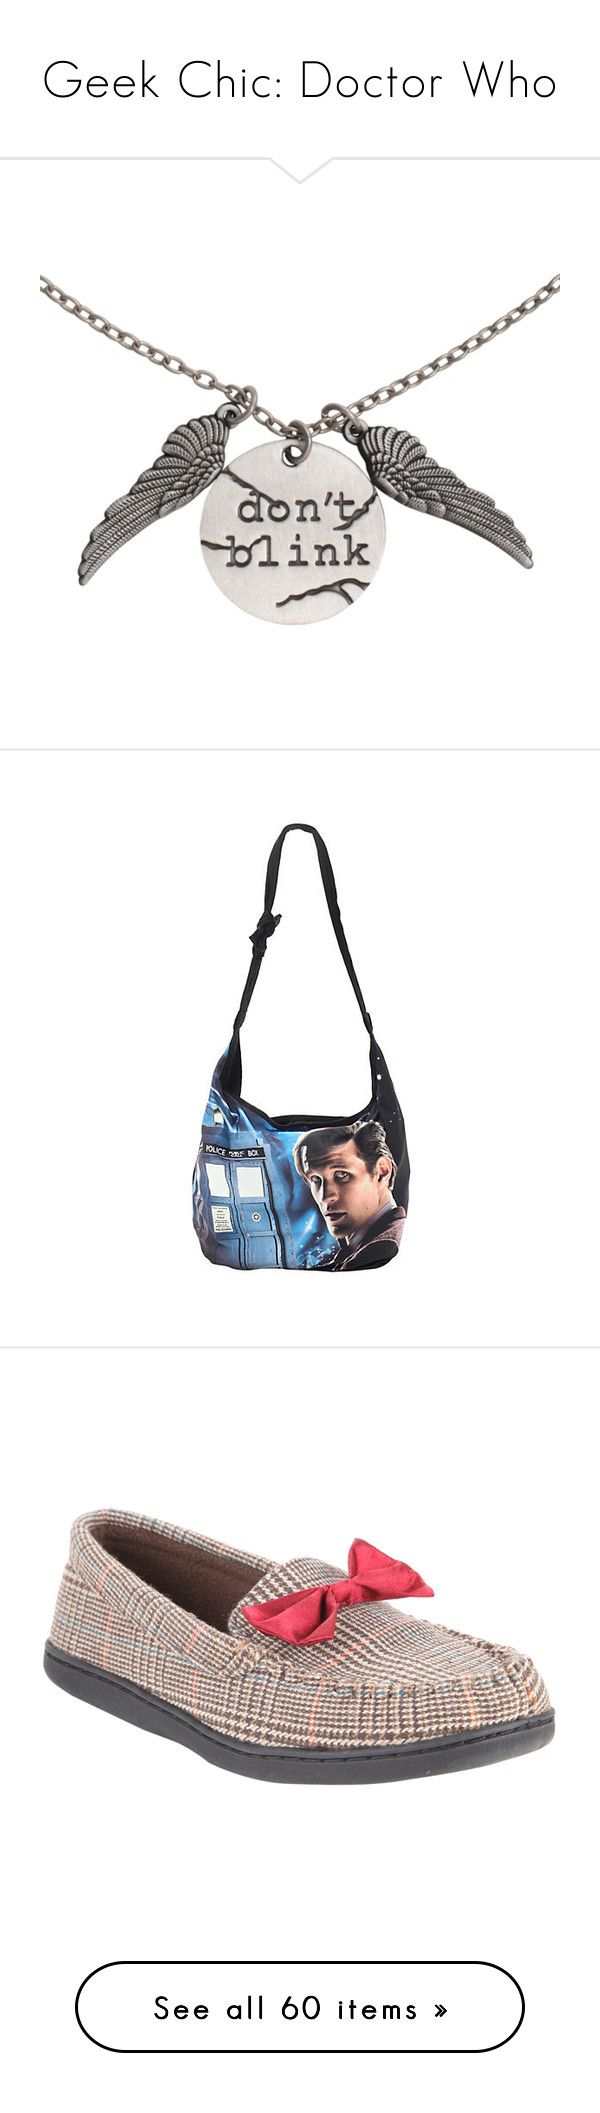 """""""Geek Chic: Doctor Who"""" by saint-mercy ❤ liked on Polyvore featuring jewelry, necklaces, accessories, doctor who, bags, handbags, shoulder bags, hobo purses, white hobo purse and white handbags"""